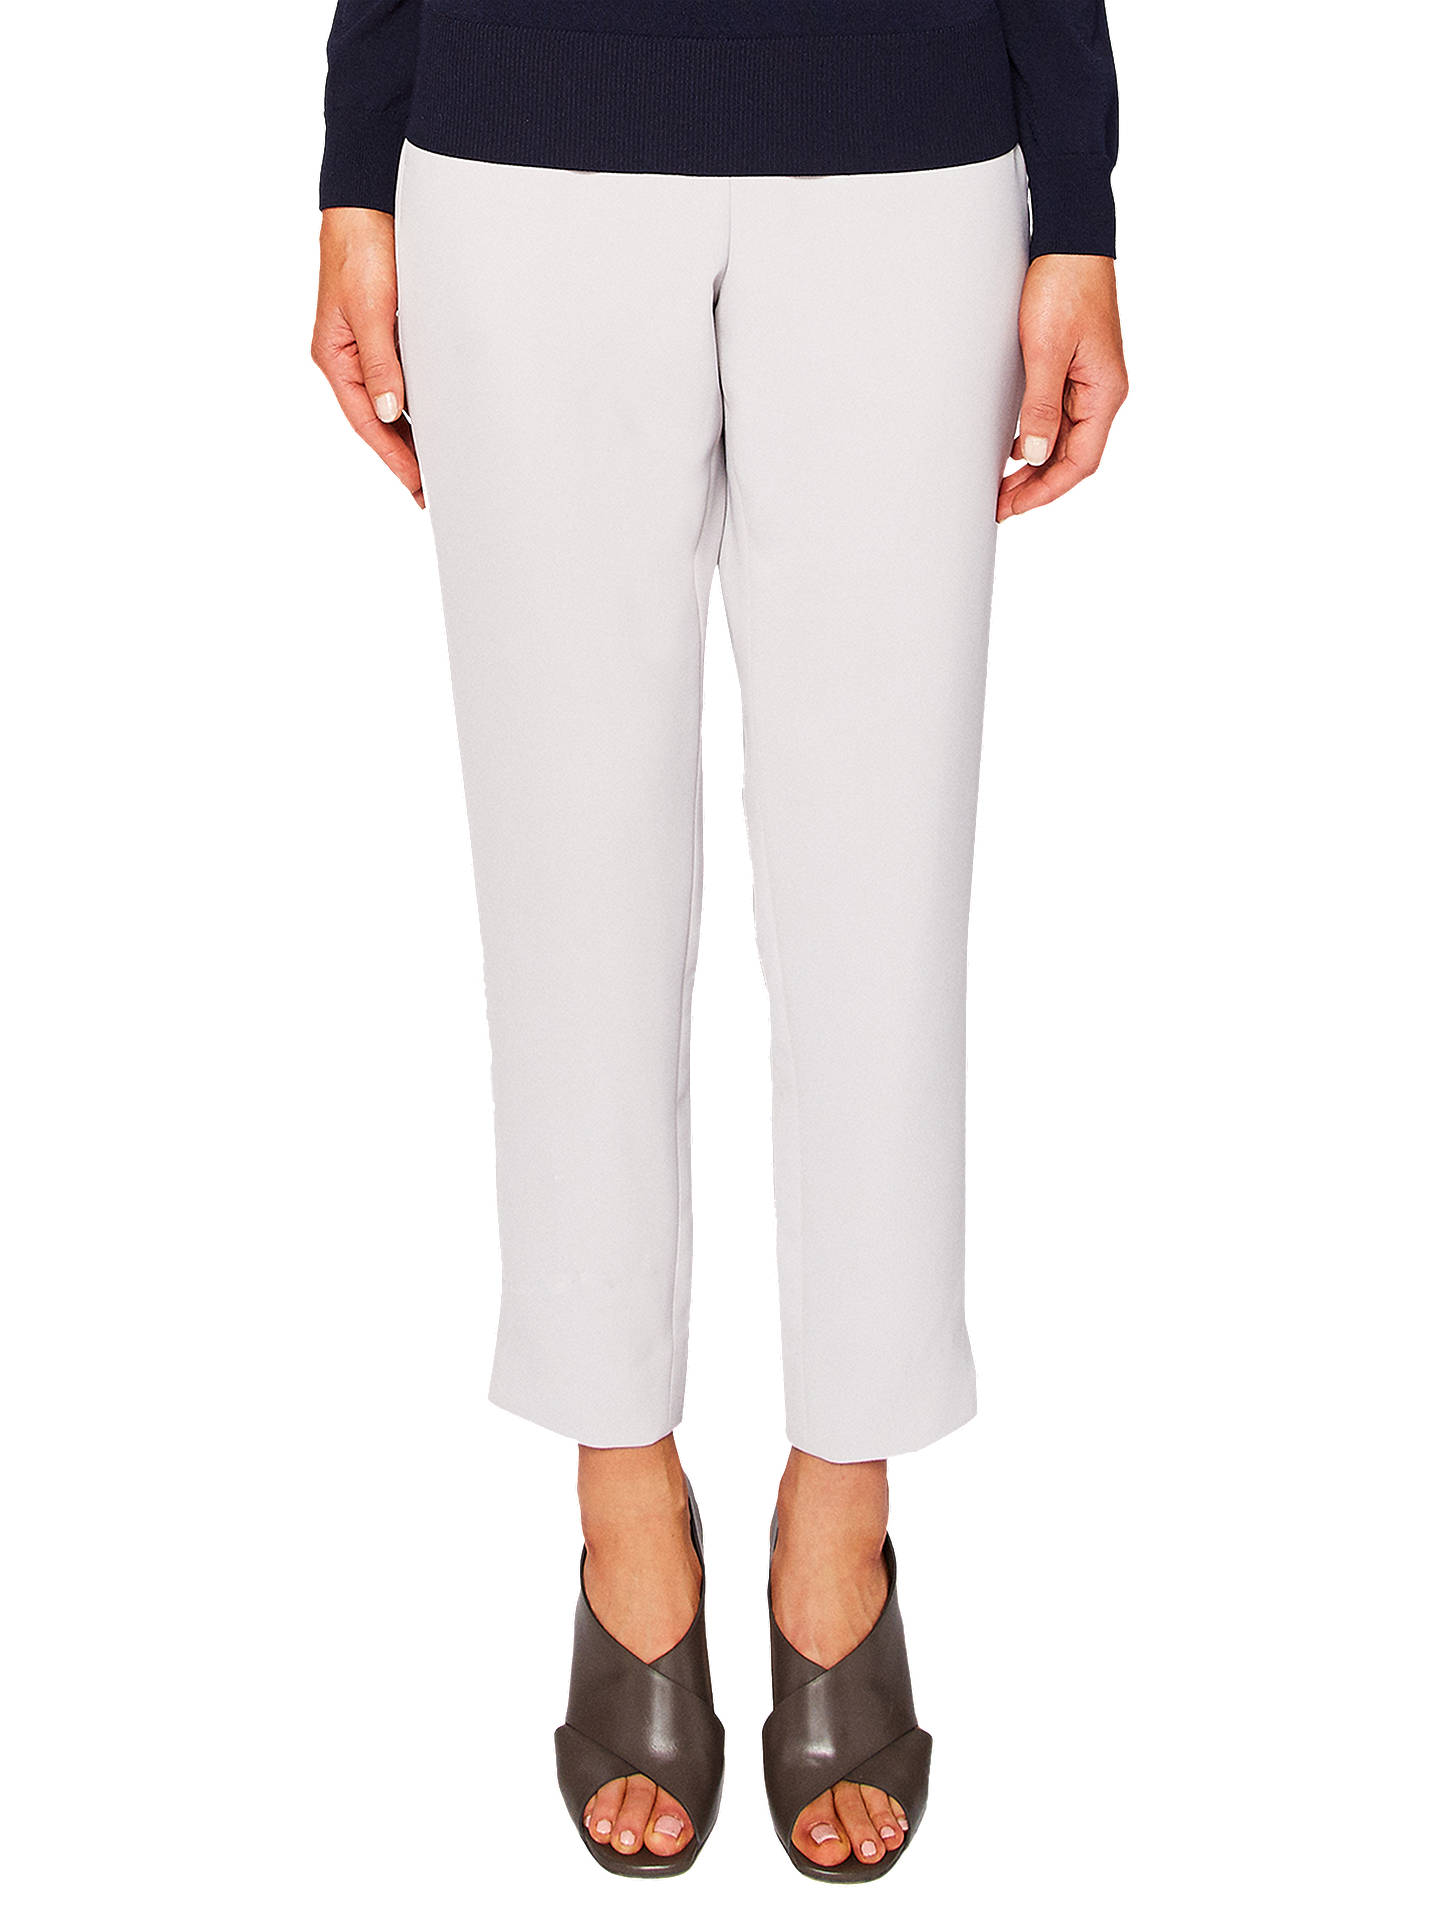 BuyTed Baker Rutti Tapered Ankle Grazer Trousers, Light Grey, 0 Online at johnlewis.com